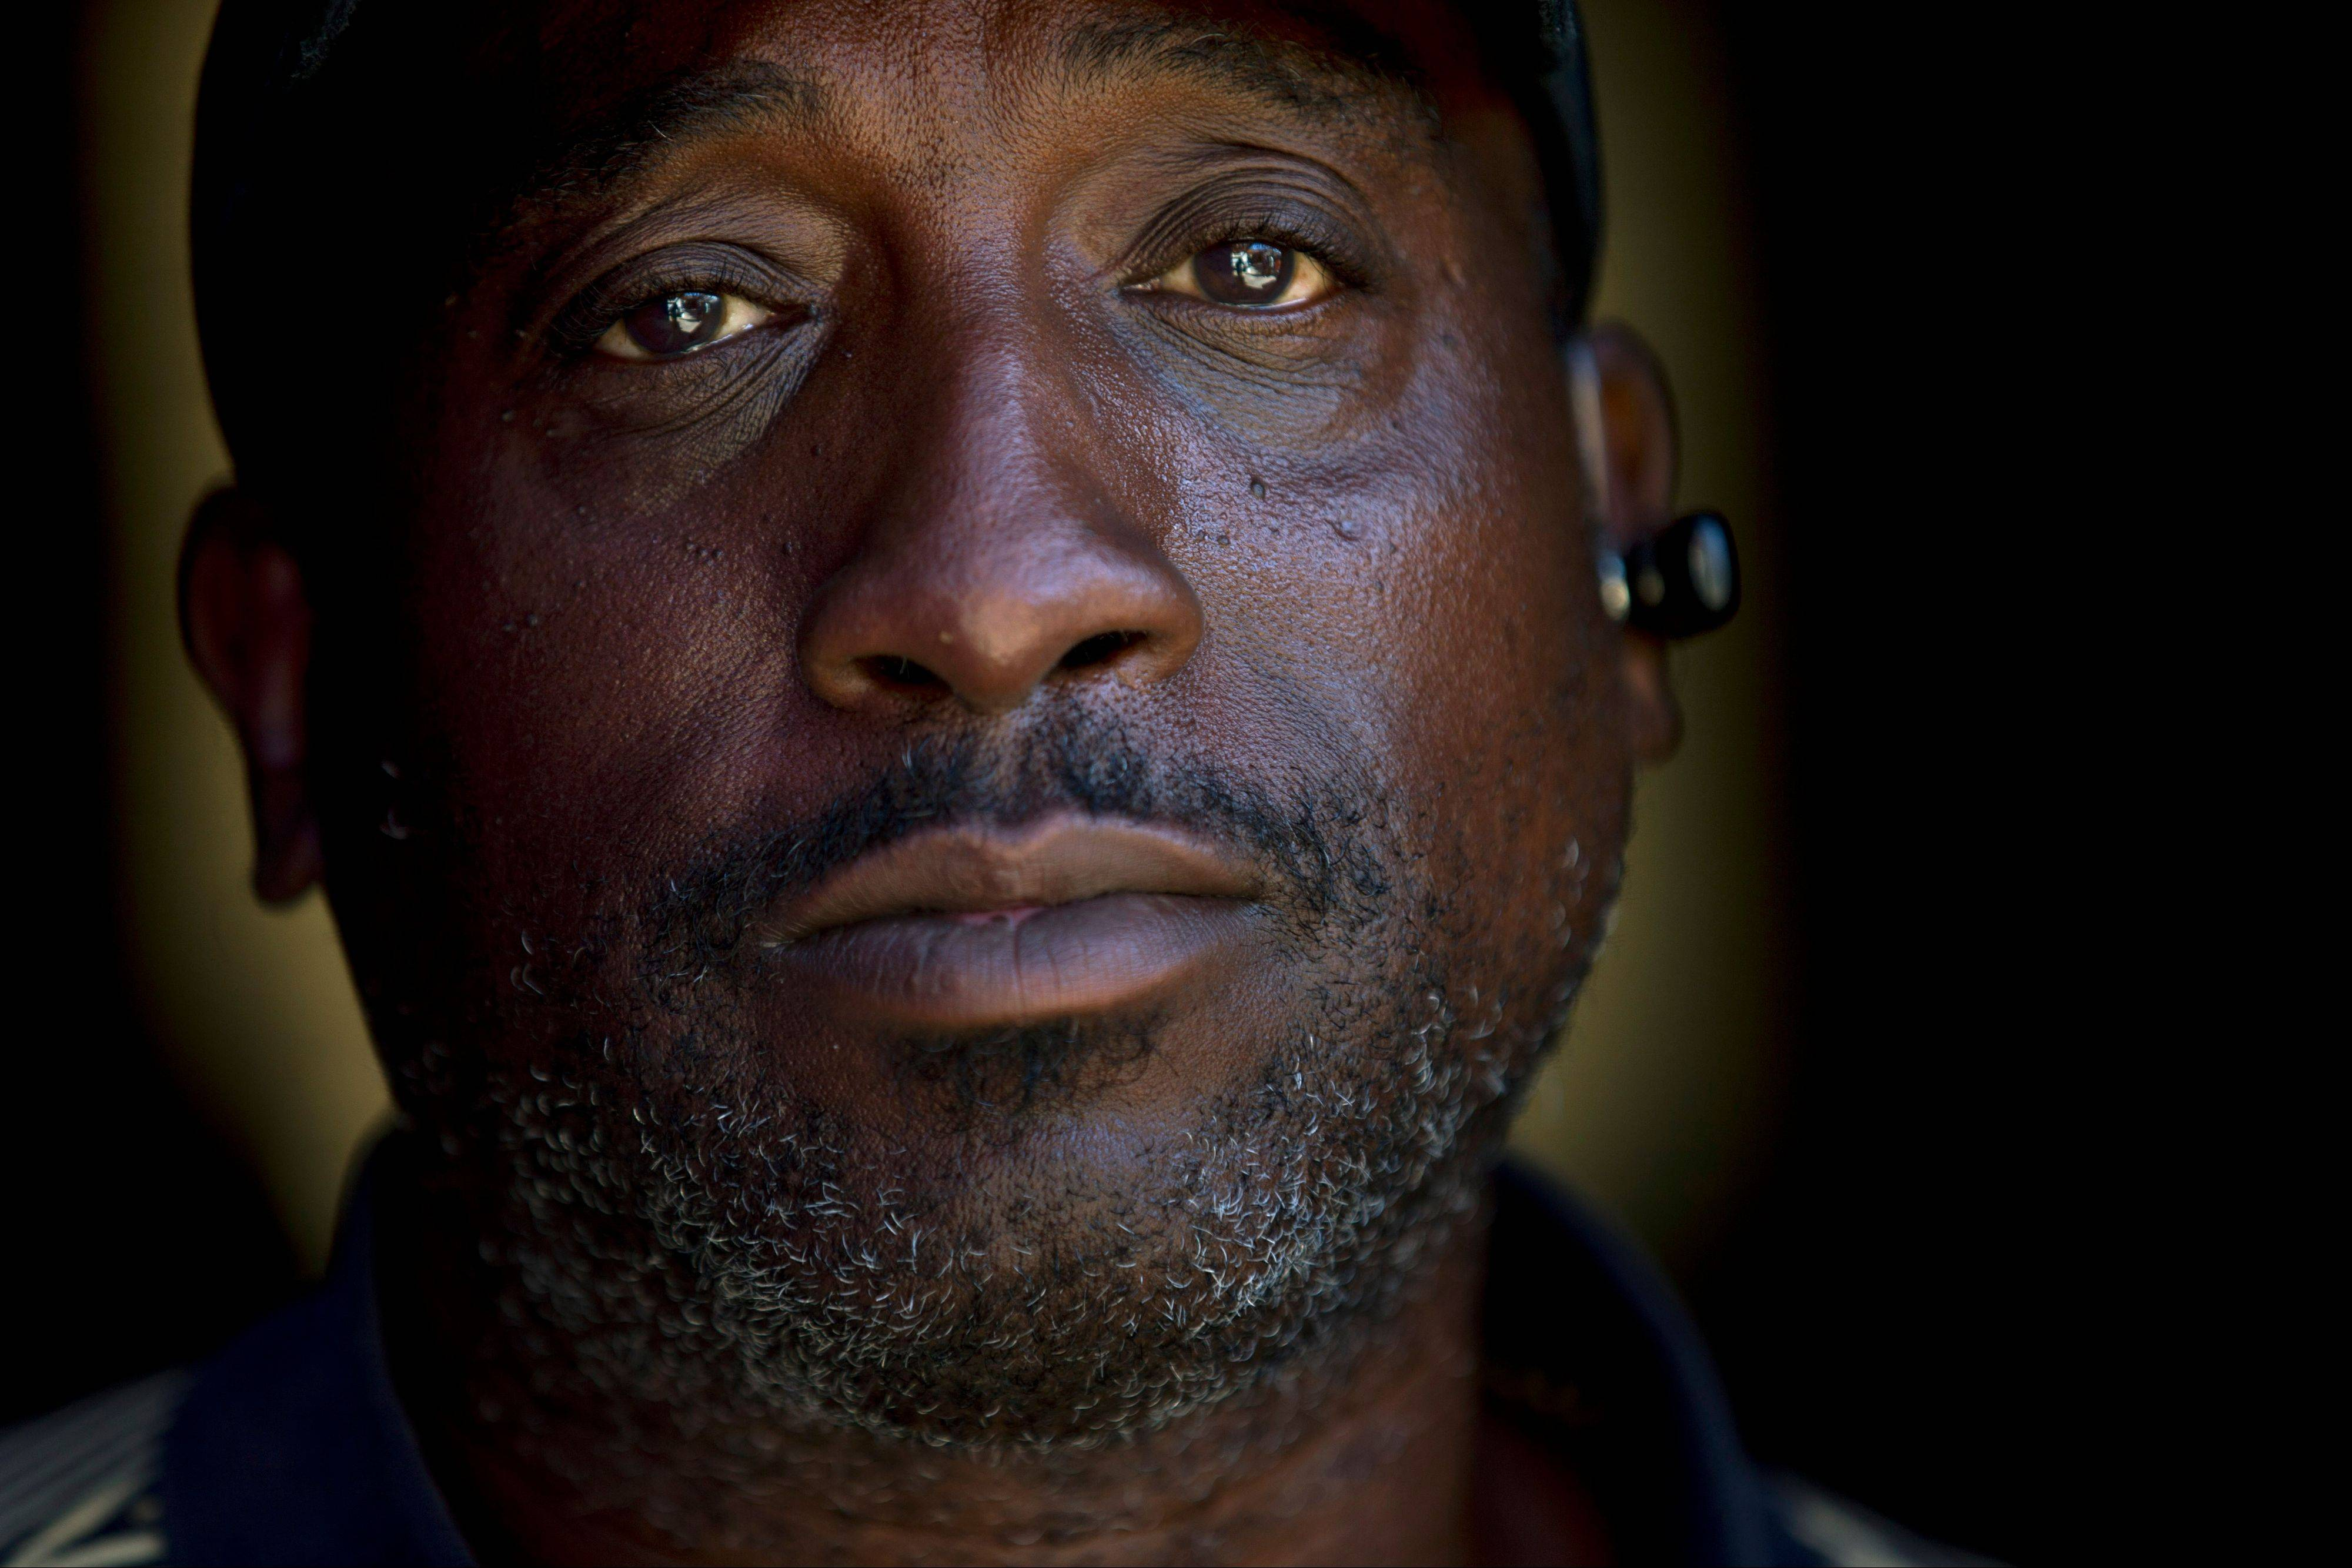 In this Sept. 19, 2012 picture, homeless veteran Jerome Belton poses for a portrait at a homeless shelter in San Diego. A former Marine, Belton now lives on the streets in San Diego. Despite budget increases and an aggressive strategy, the Obama administration struggles to make good on its audacious promise: End homelessness among veterans by 2015.